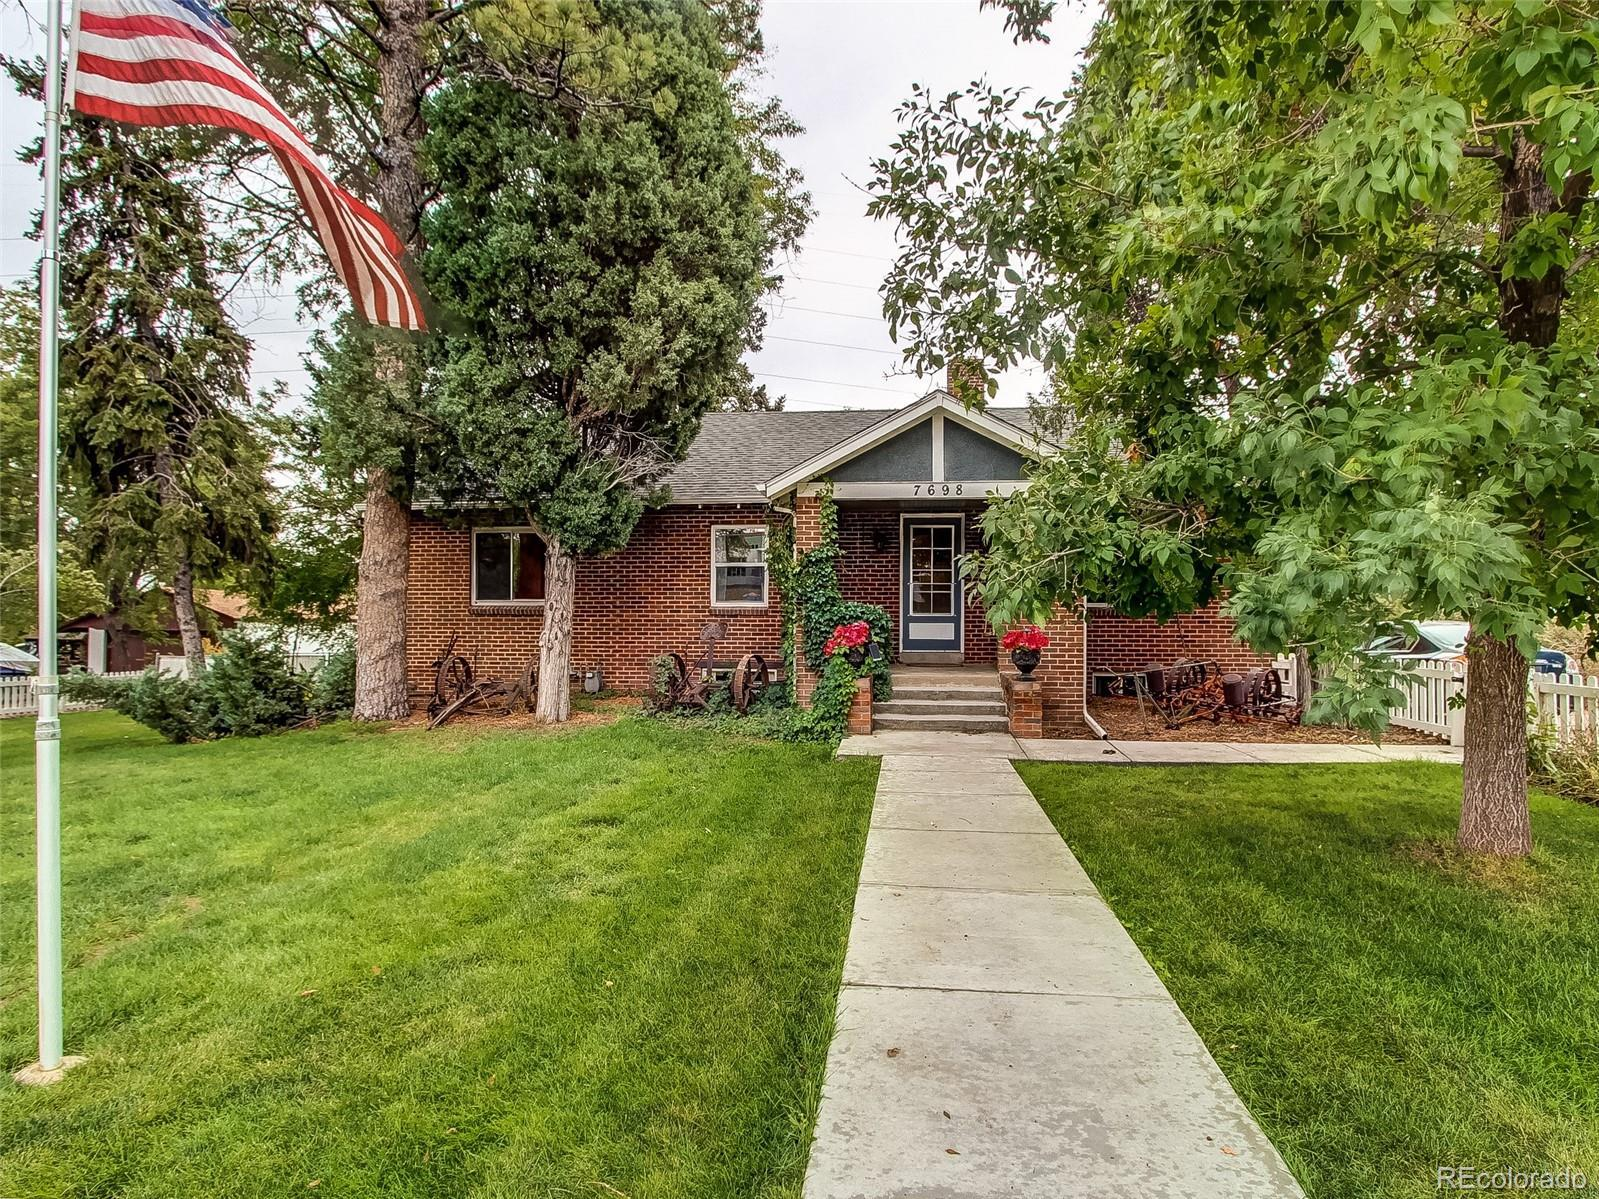 7698 W 10th Avenue, Lakewood, CO 80214 - #: 4466363